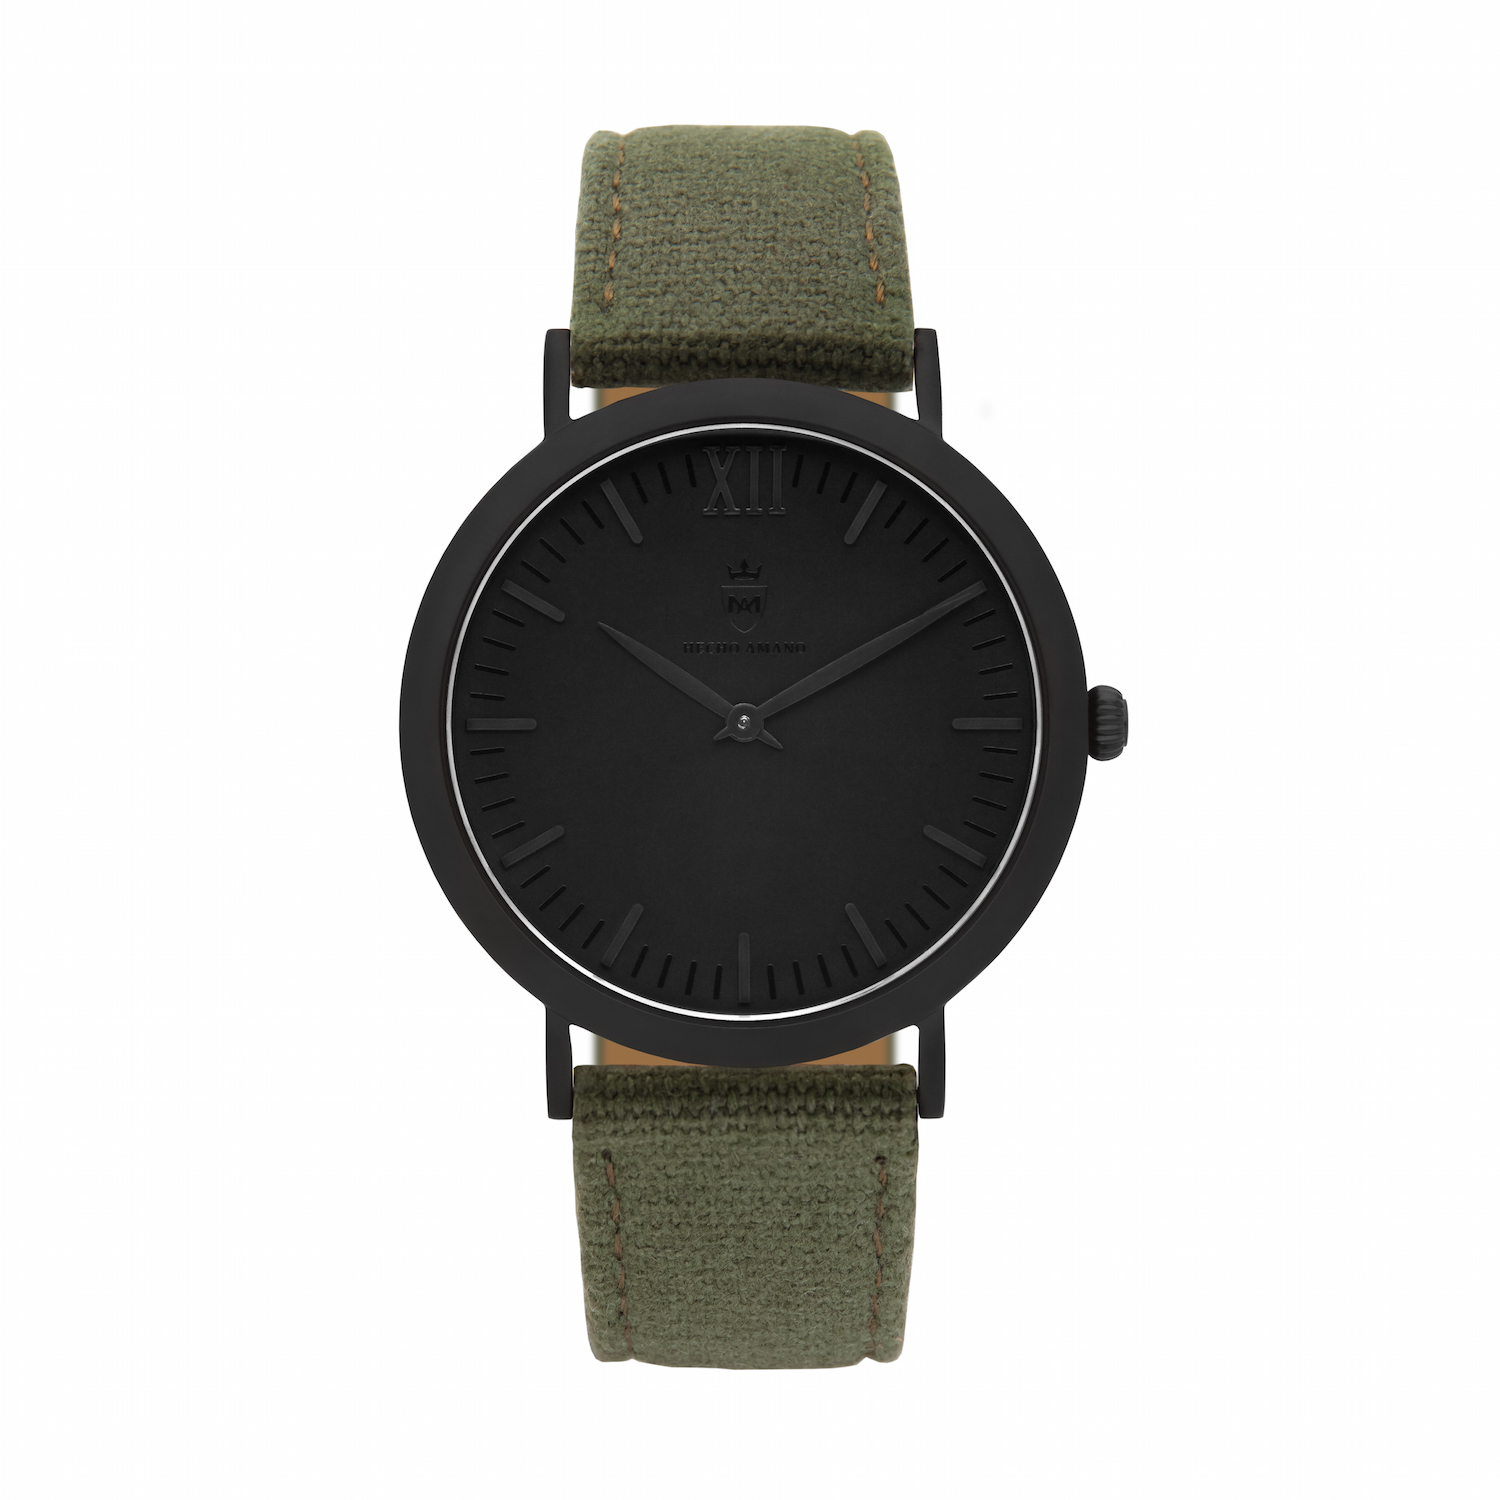 All Black Khaki Canvas Calf Leather